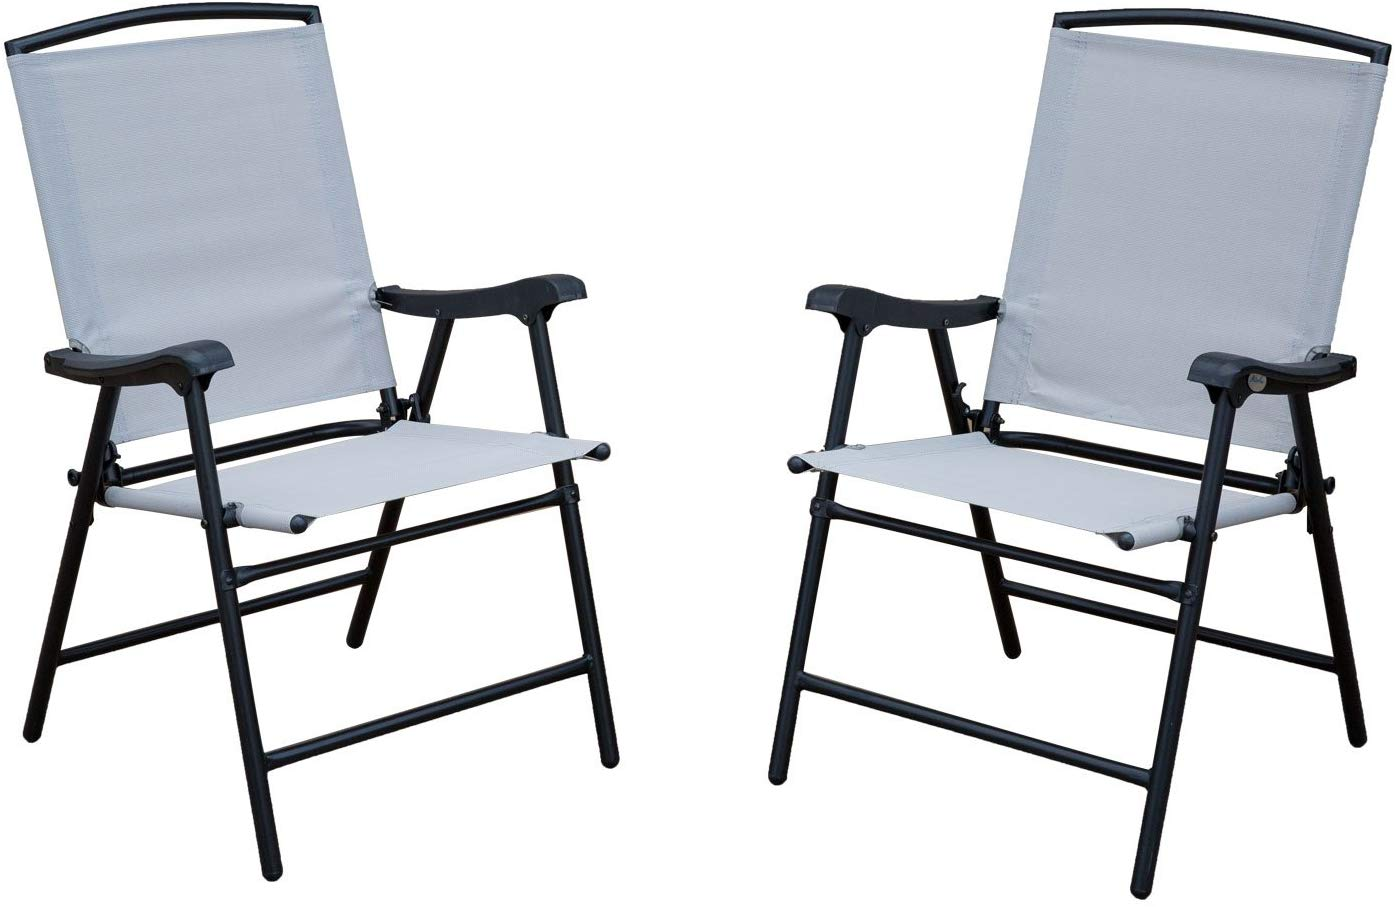 SLN 2-Pack Outdoor Chairs